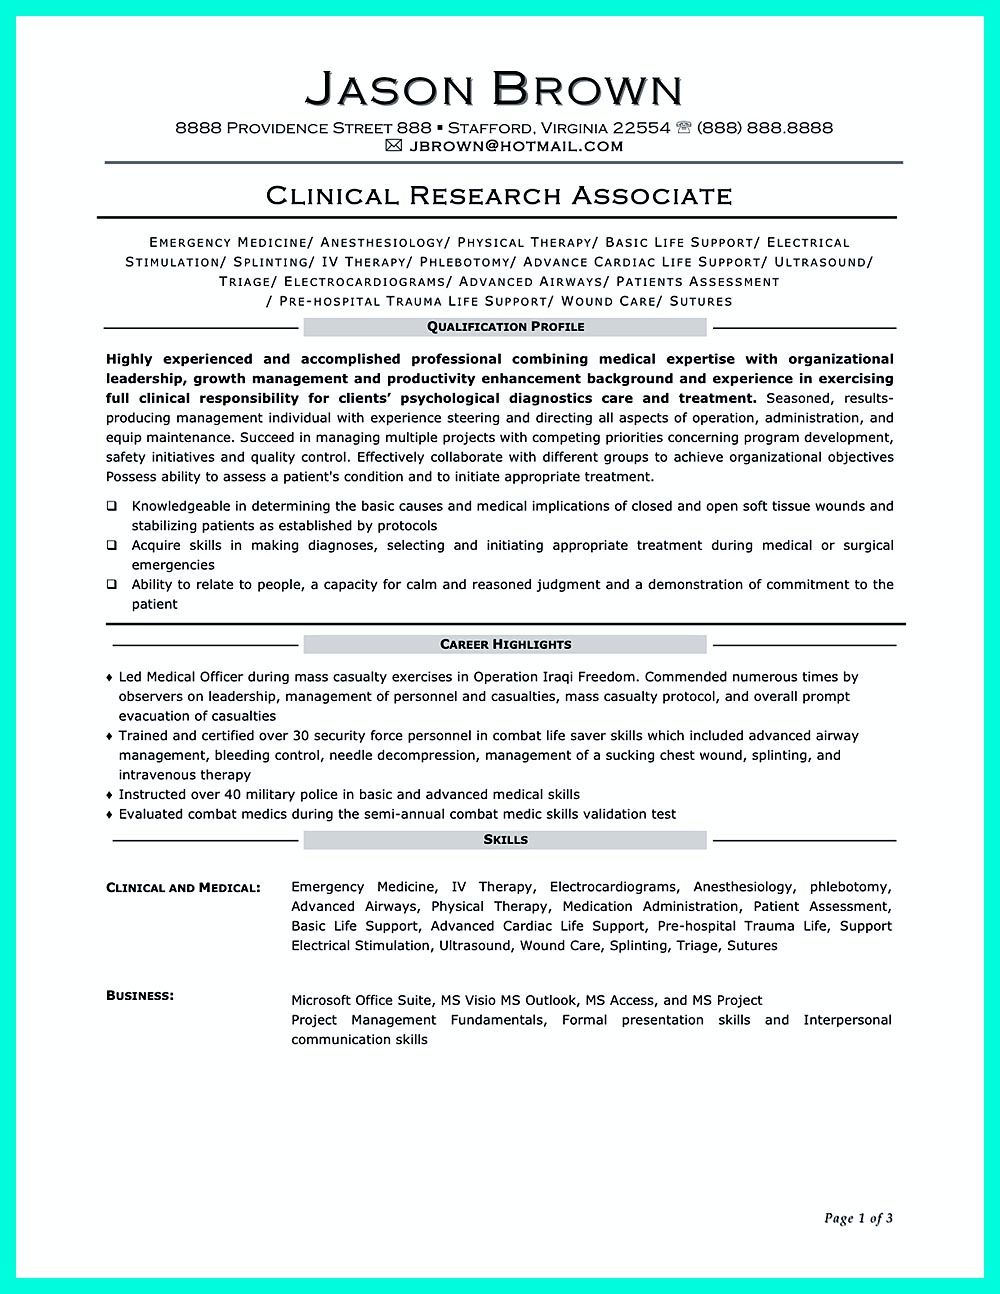 clinical research associate resume objectives are needed to  also making clinical research associate resume is sometimes not easy but donot worry since there are a lot of clinical research associate resumesamples